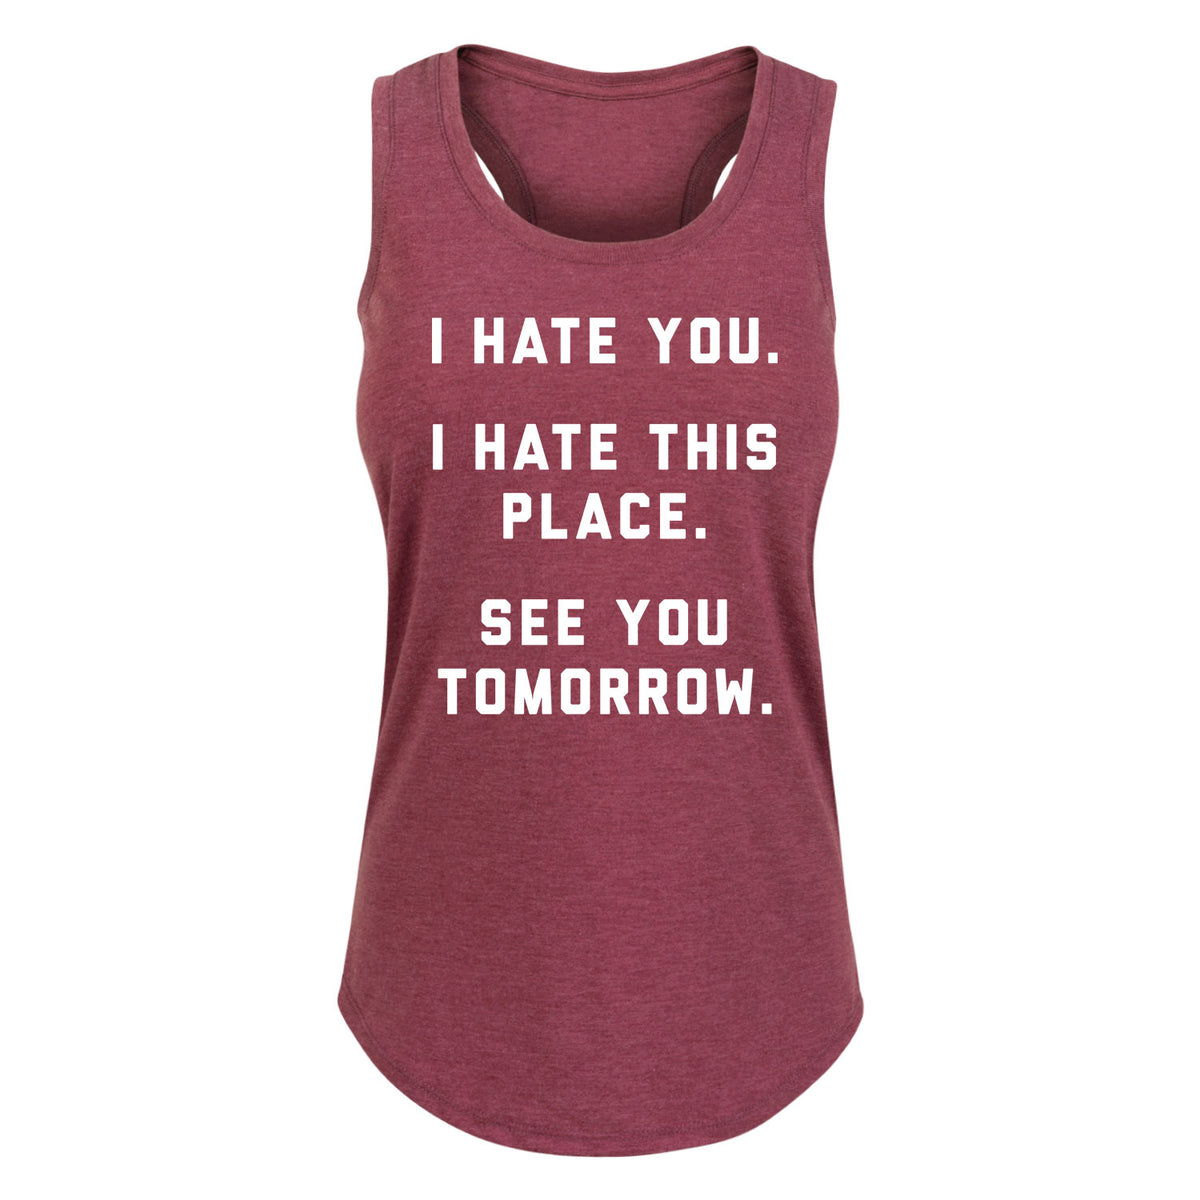 I Hate You I Hate This Place - Women's Racerback Tank